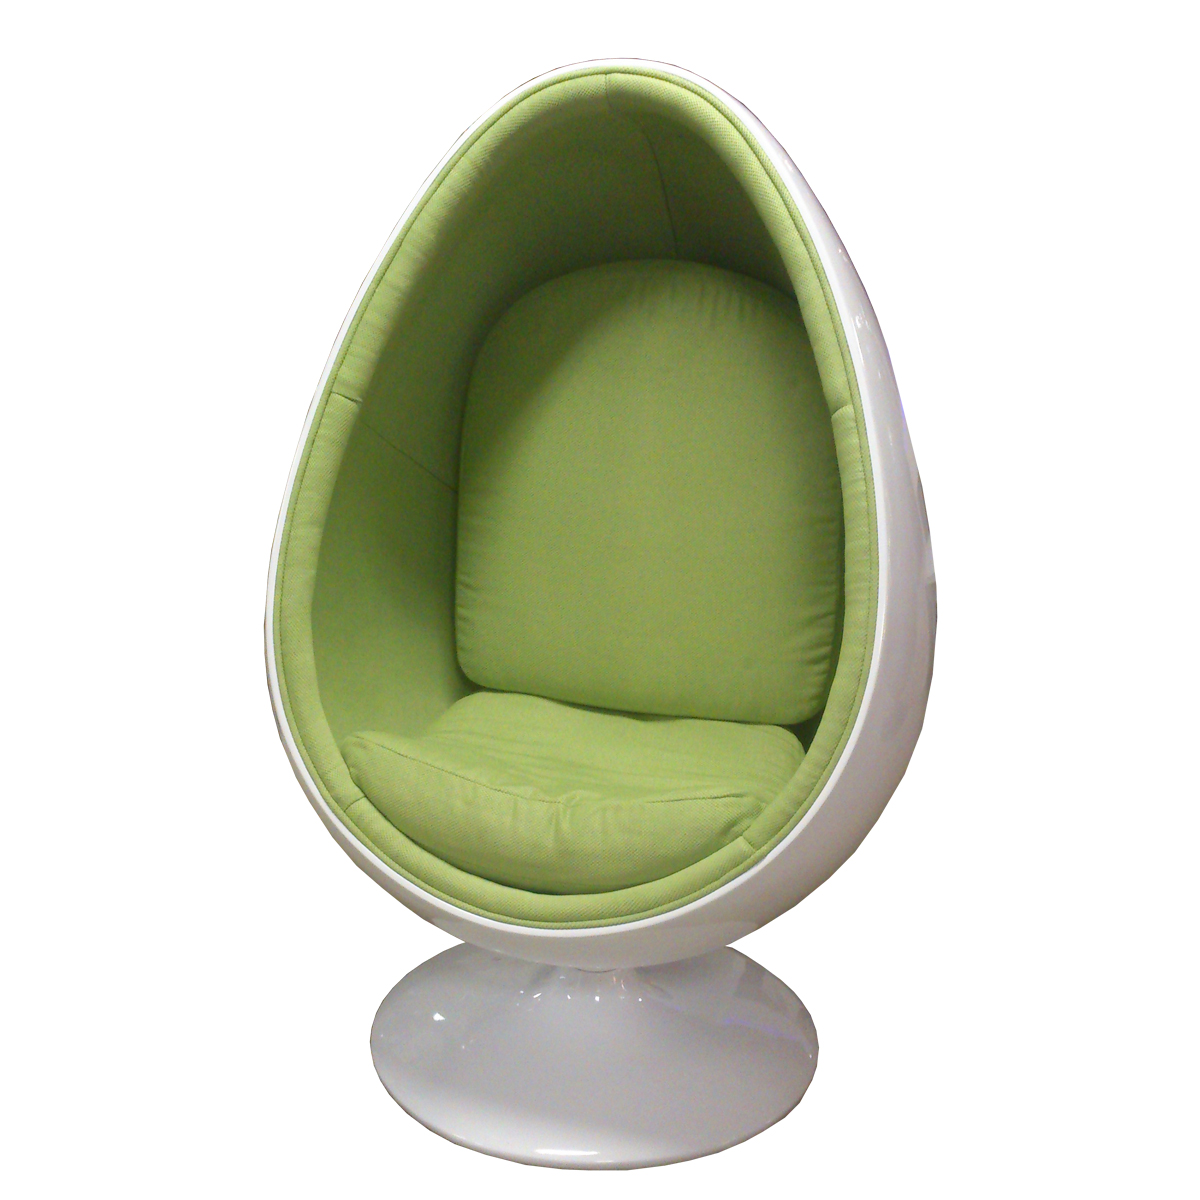 Tomasucci Sessel Lounge Sessel Retro Design Sitzei Space Egg Glasfaser